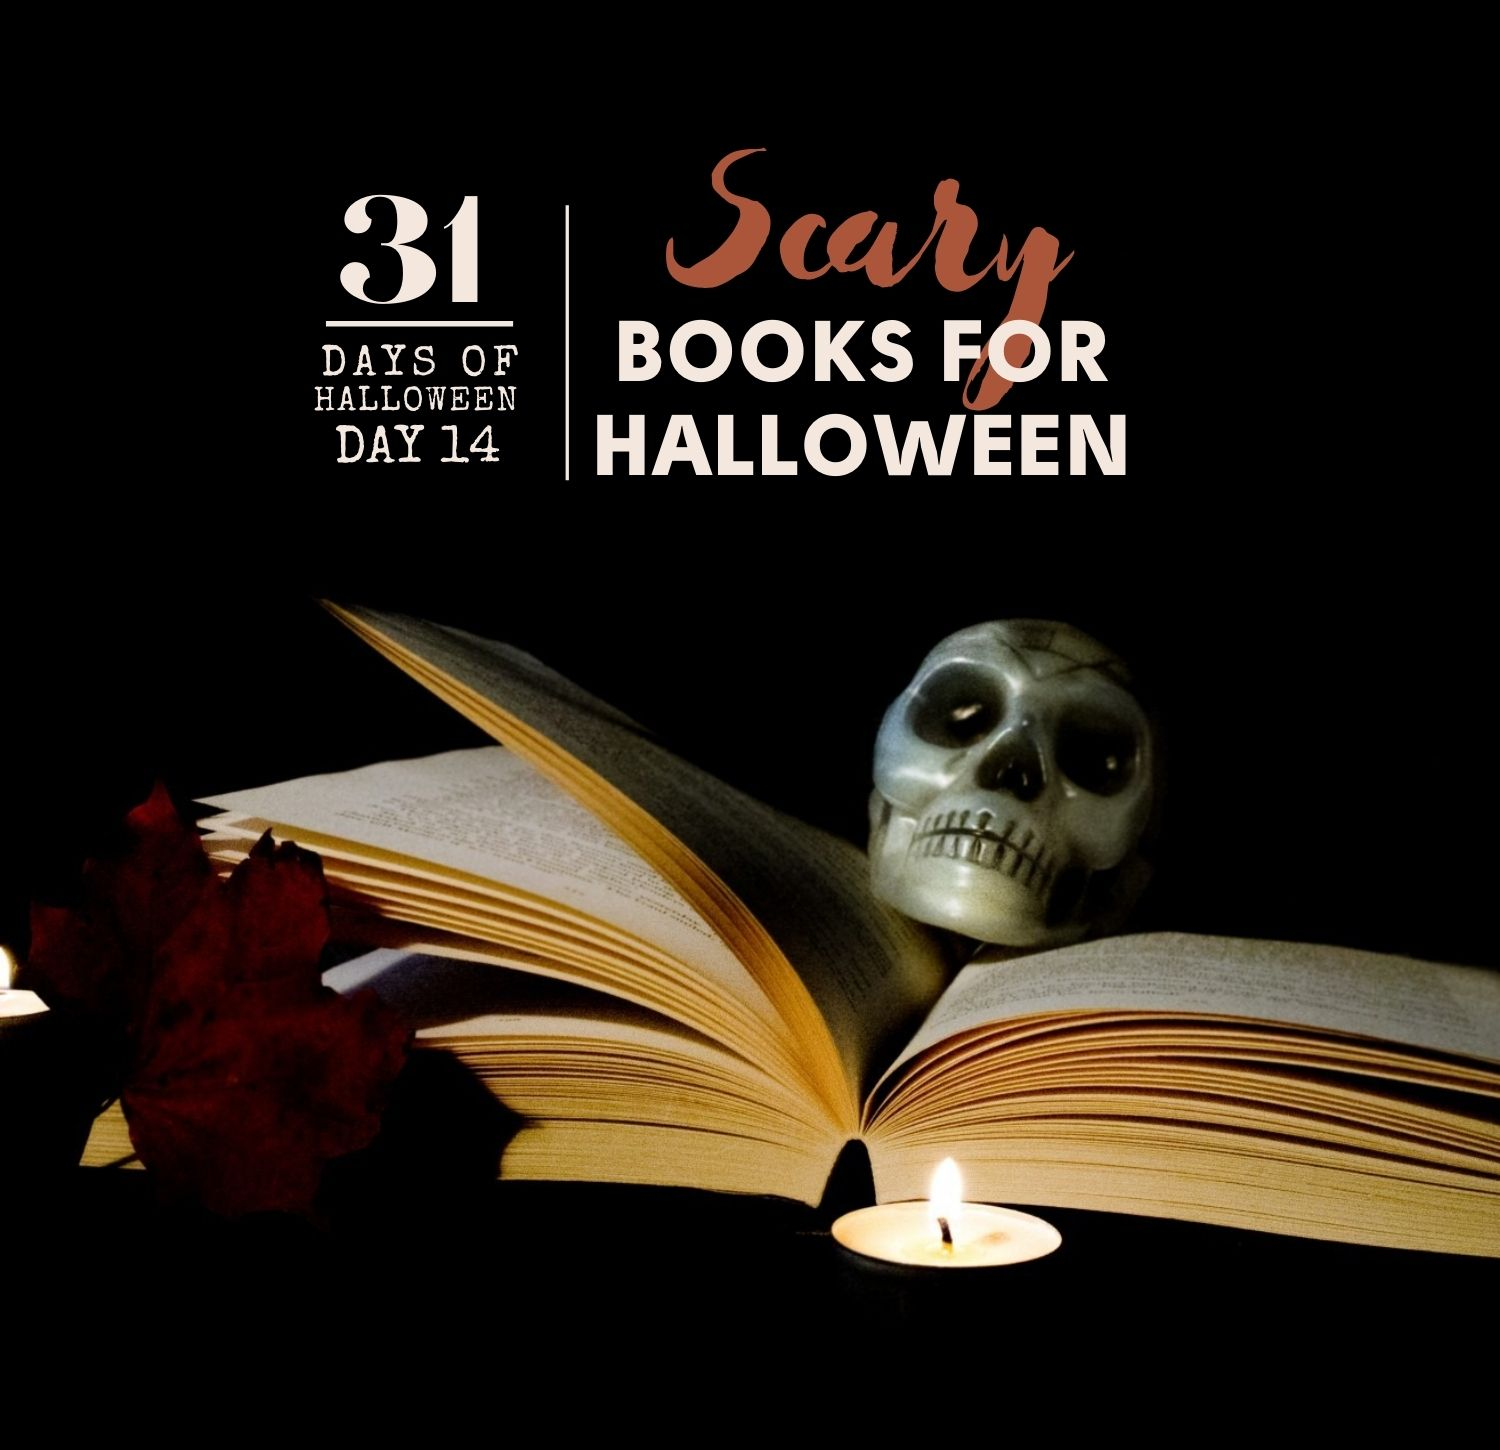 Day 14, Scary books for Halloween, 2020